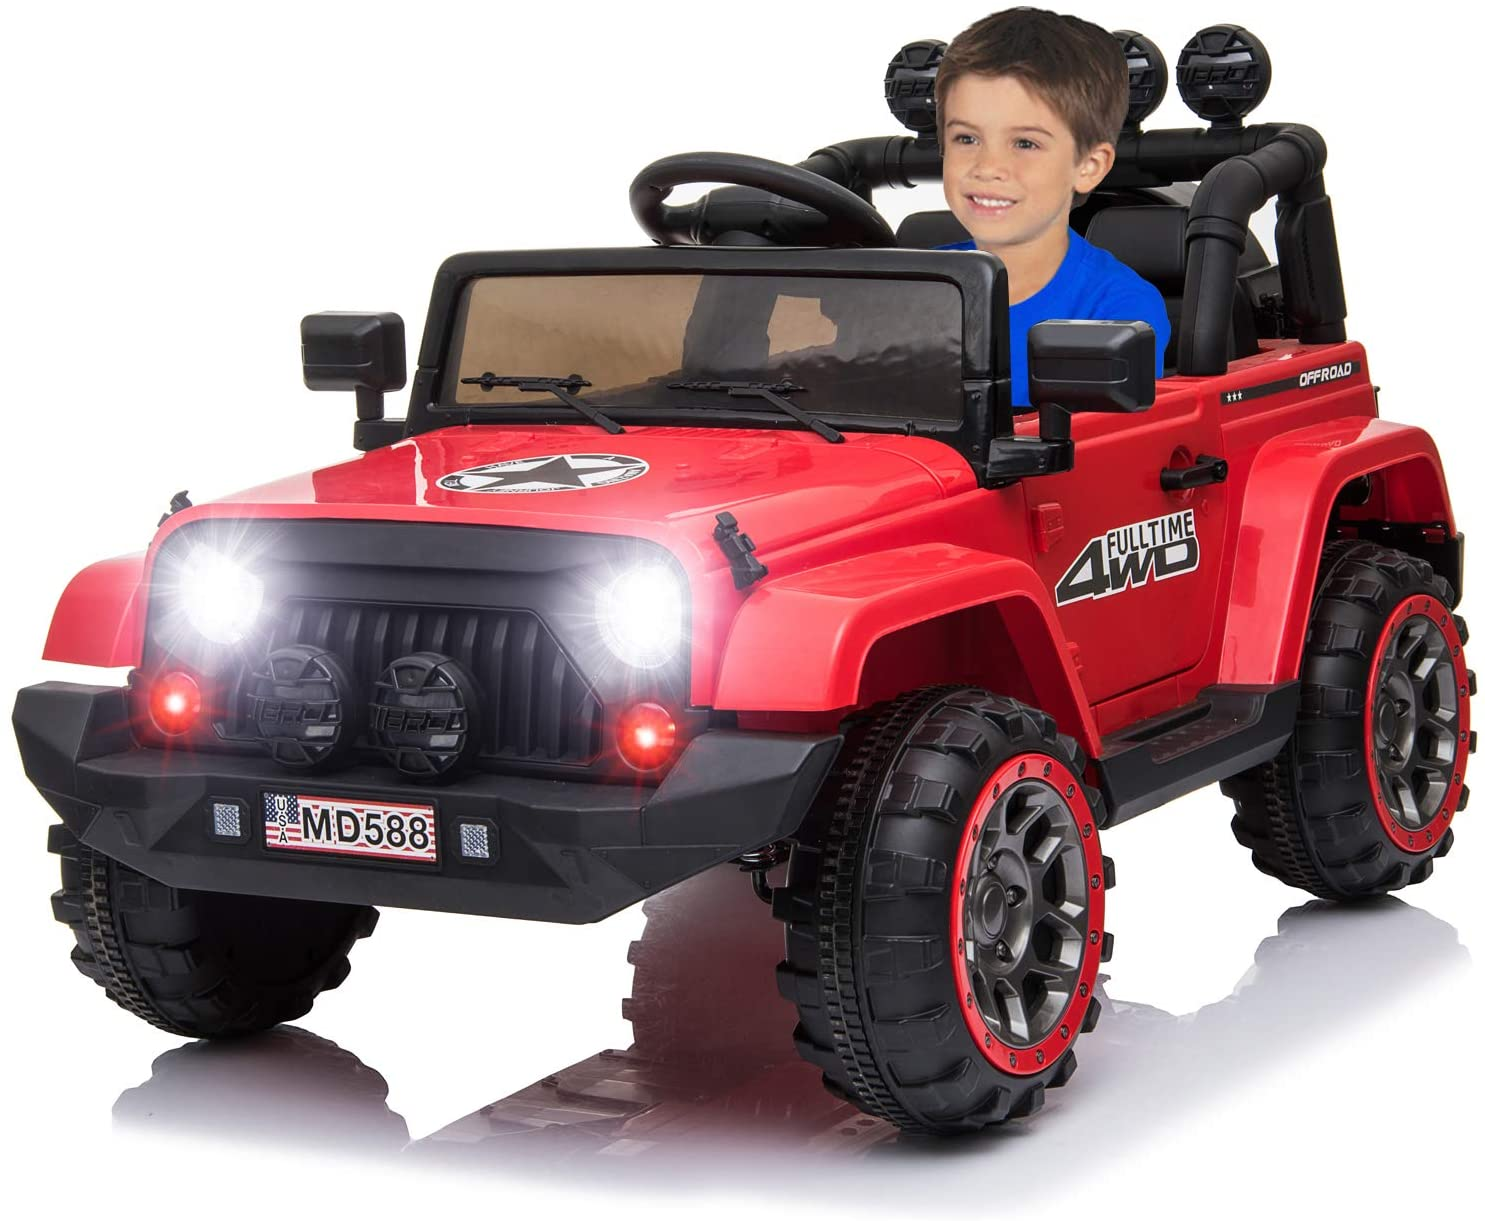 IKON MOTORSPORTS 12V Electric Ride On Car w/ Remote Control for Kids, Spring Suspension, LED Light, Openable Doors, Music Player - Red